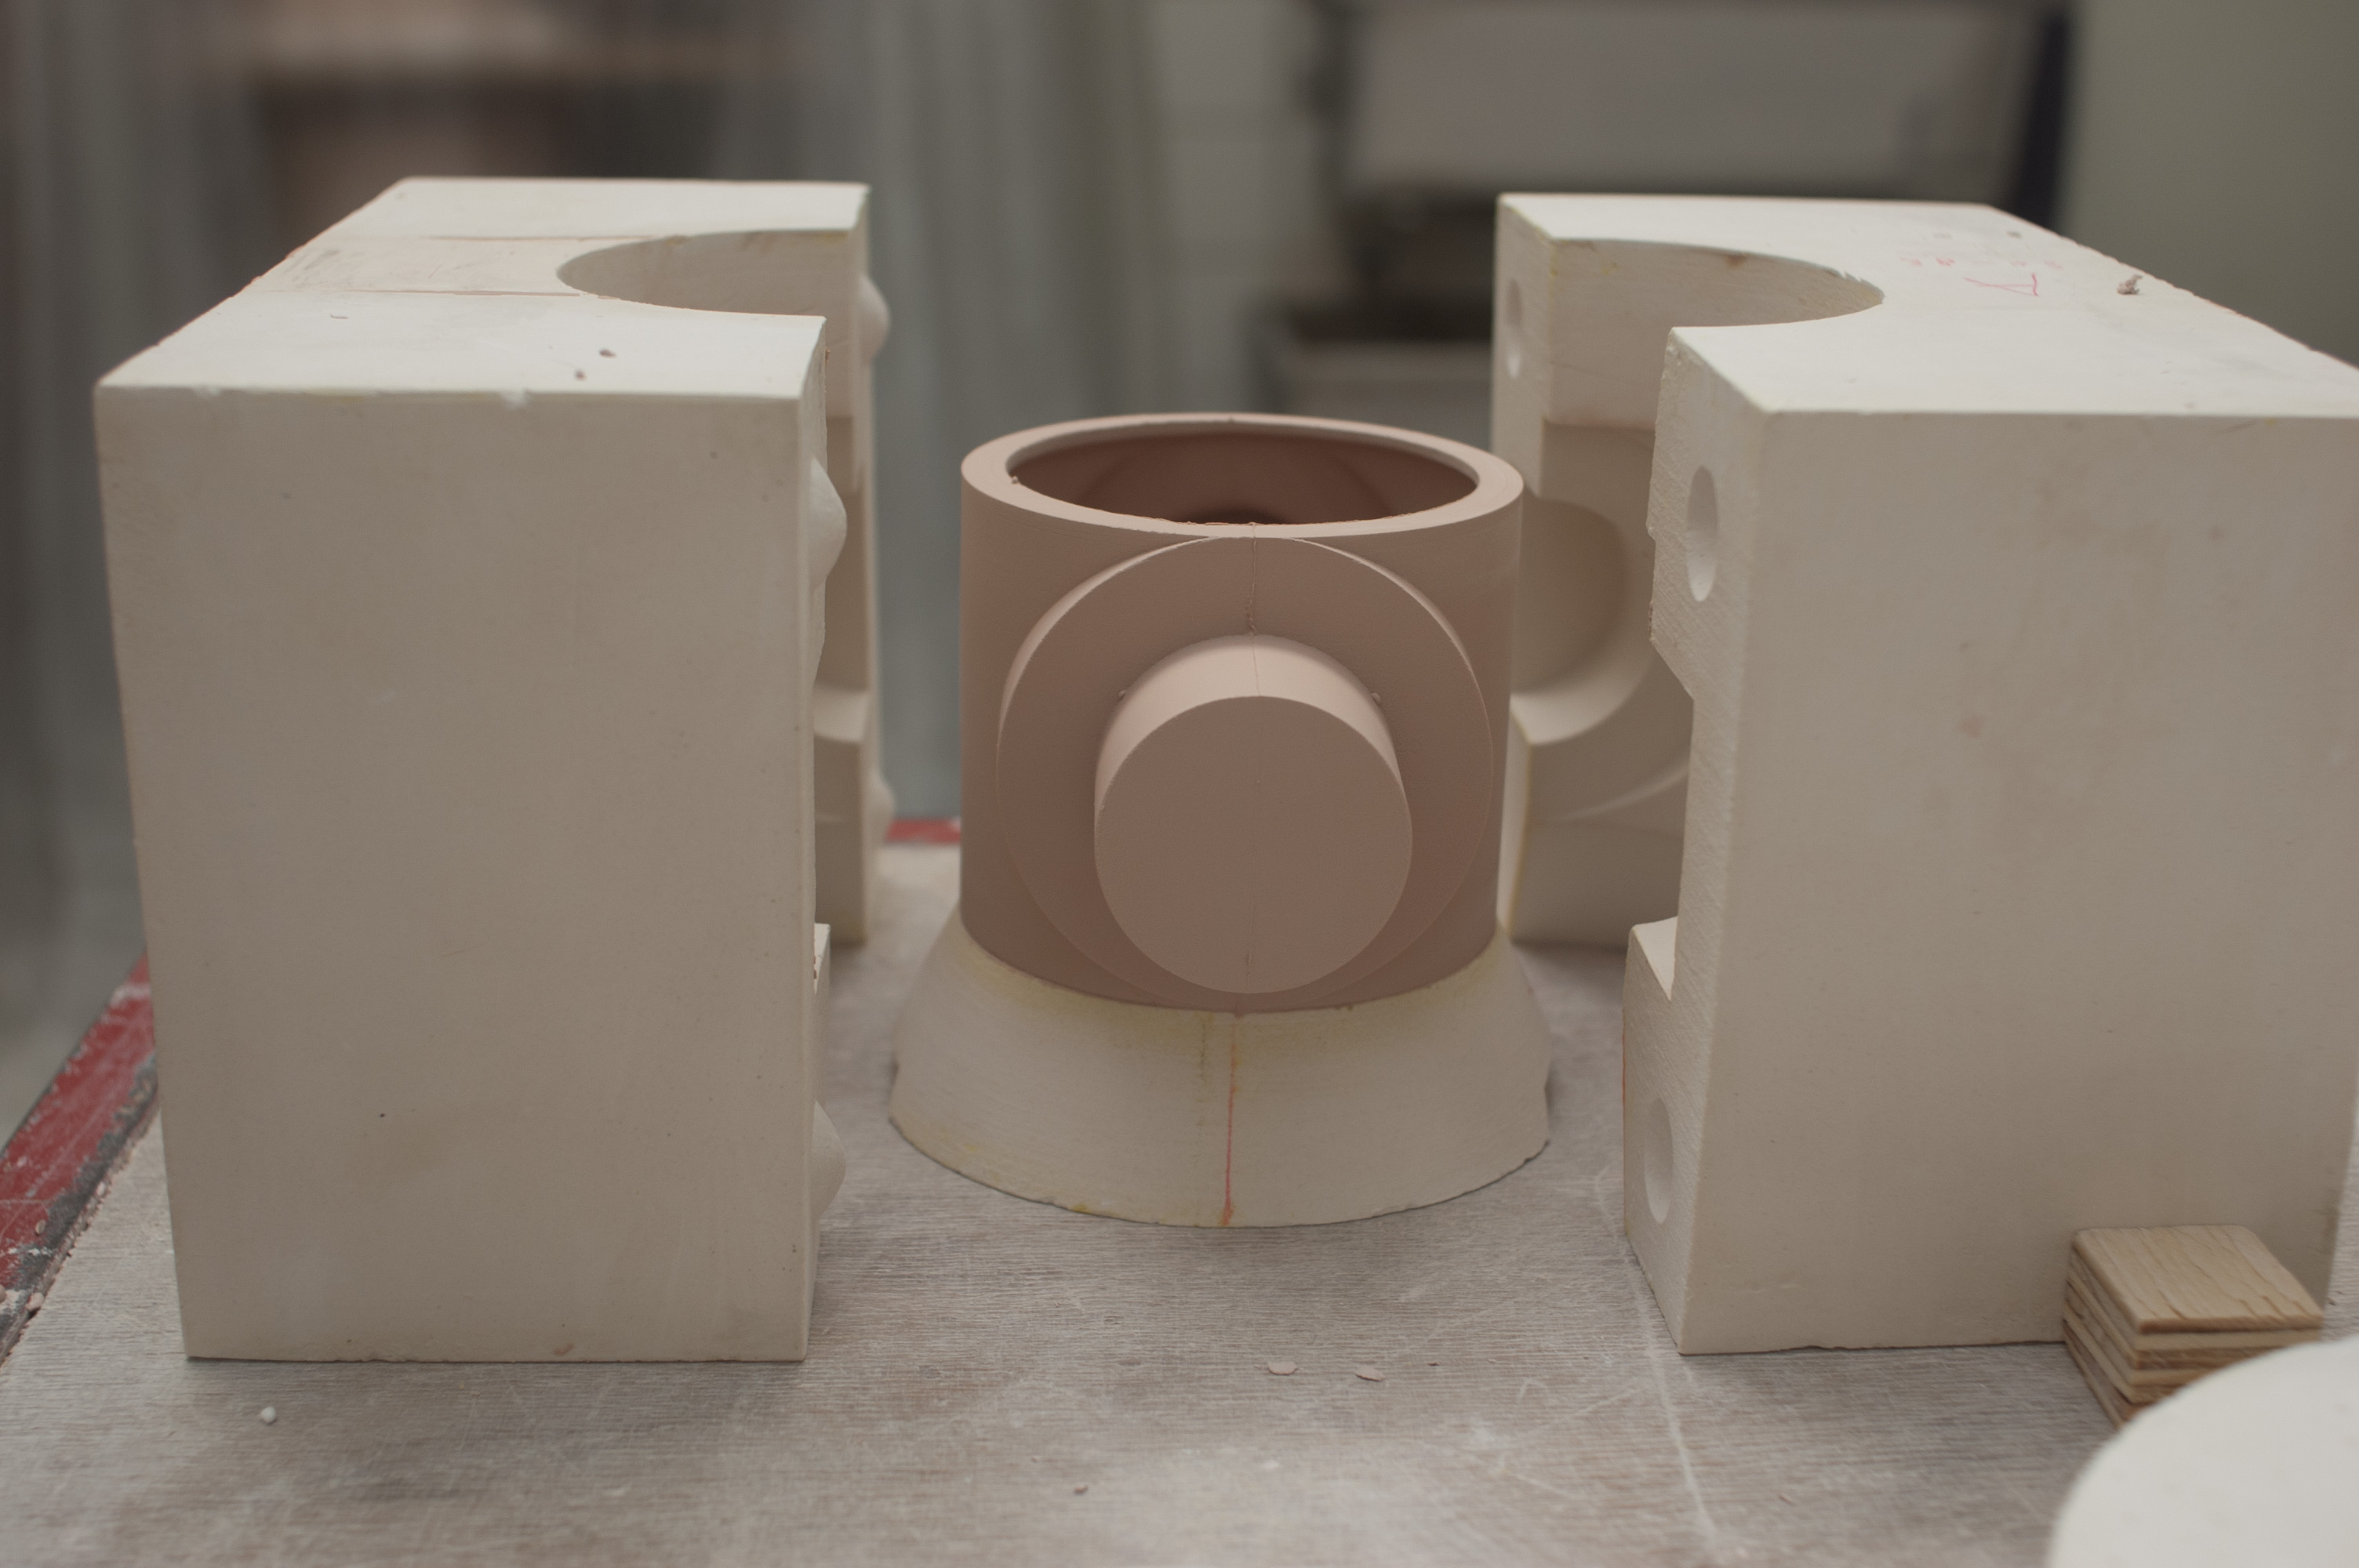 a8_minalemaeda_manufactured_ceramics_mdby_mdba_cadcam_fabrication